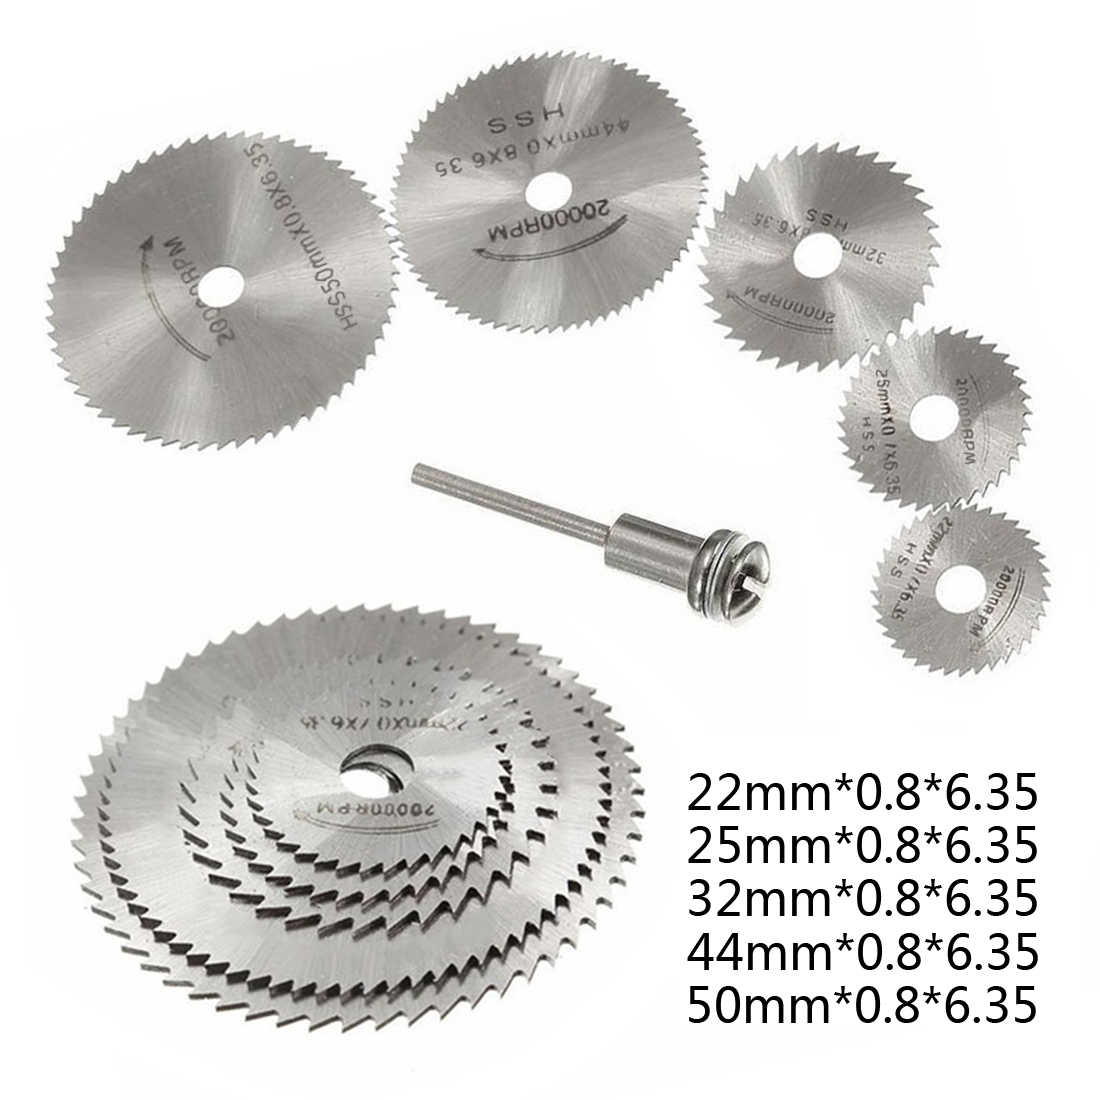 HSS Circular Saw Blade Rotary Tool For Dremel Metal Cutter Power Tool Set Wood Cutting Discs Drill Mandrel Cut Off